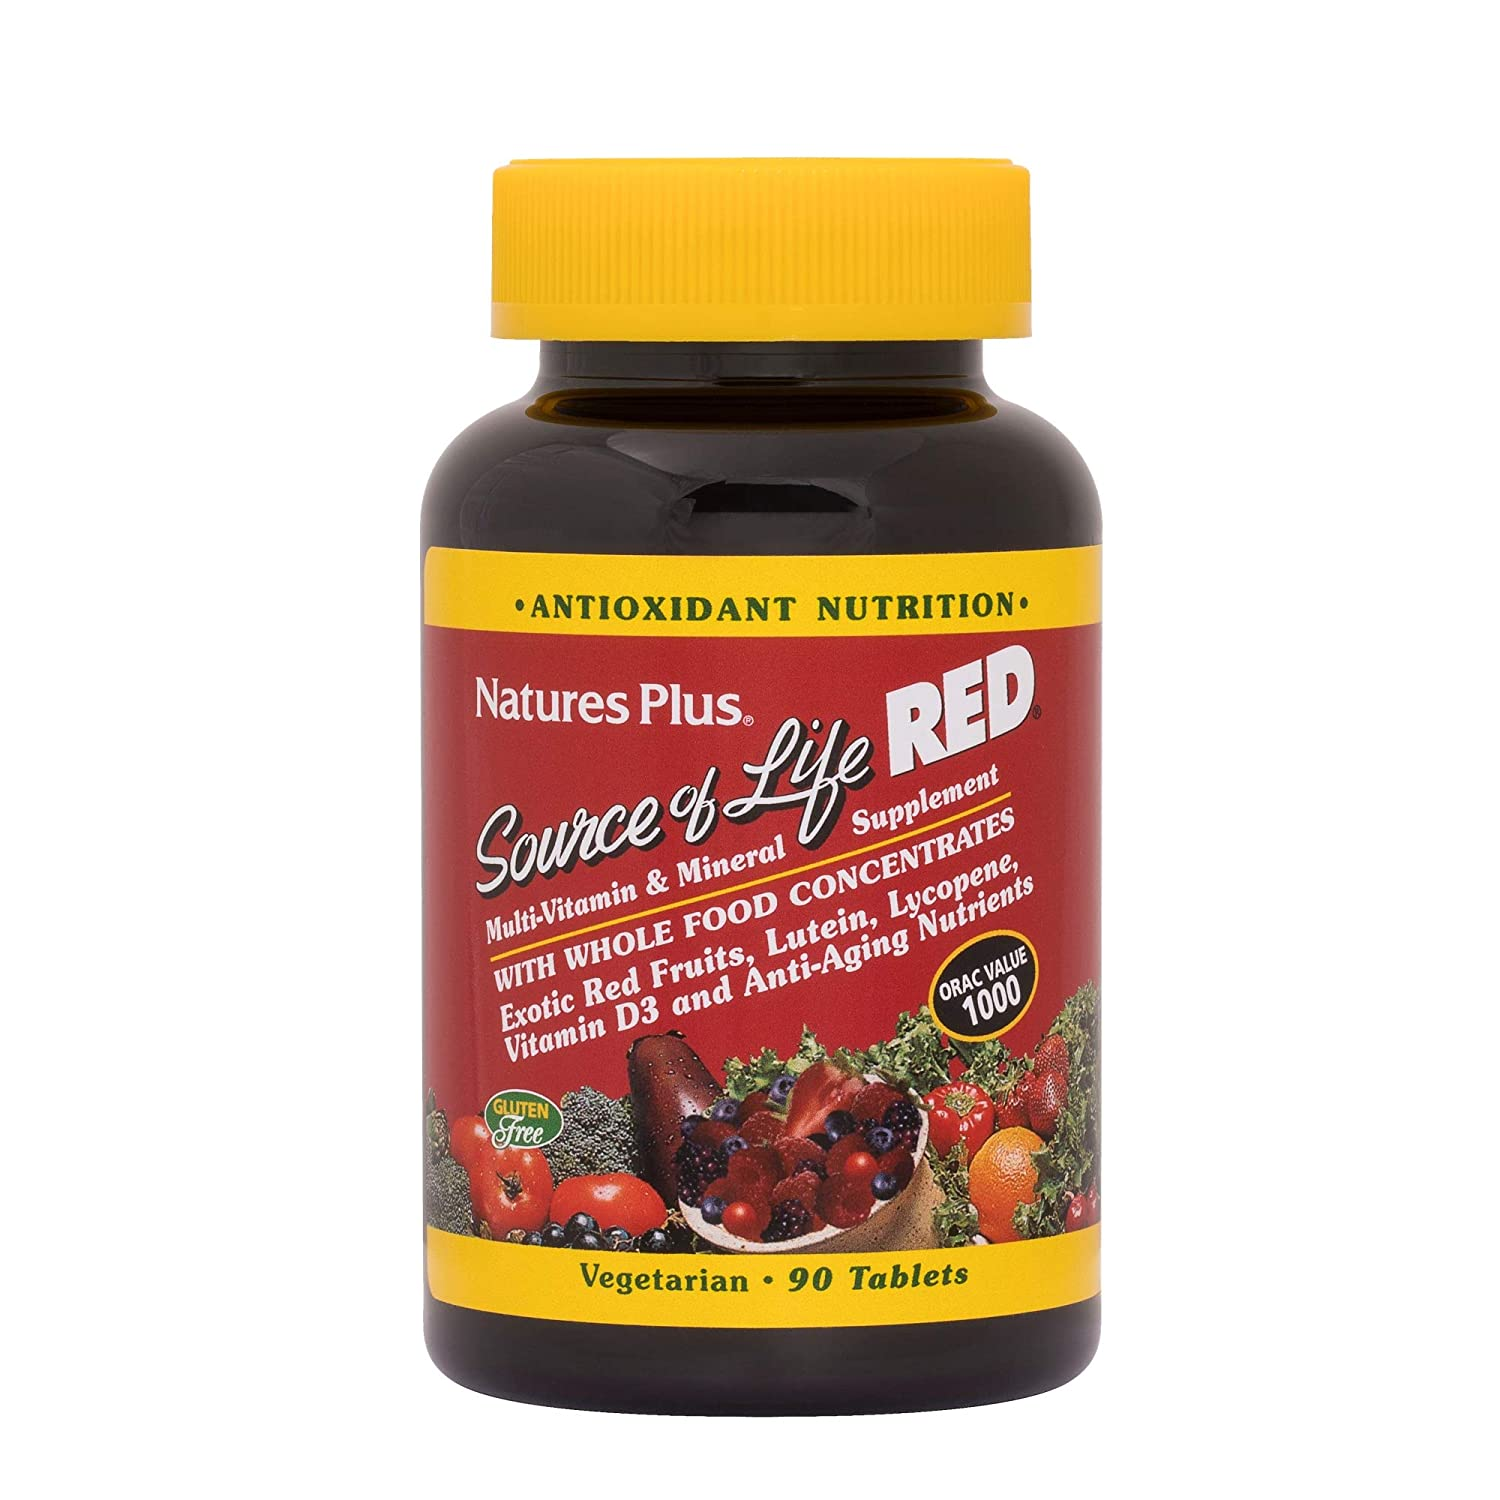 NaturesPlus Source of Life Red Tablets – 90 Vegetarian Tablets – Red Superfood Whole Food Multivitamin, Antioxidant – Anti-Aging Nutrients – Energy Boost – Gluten-Free – 30 Servings